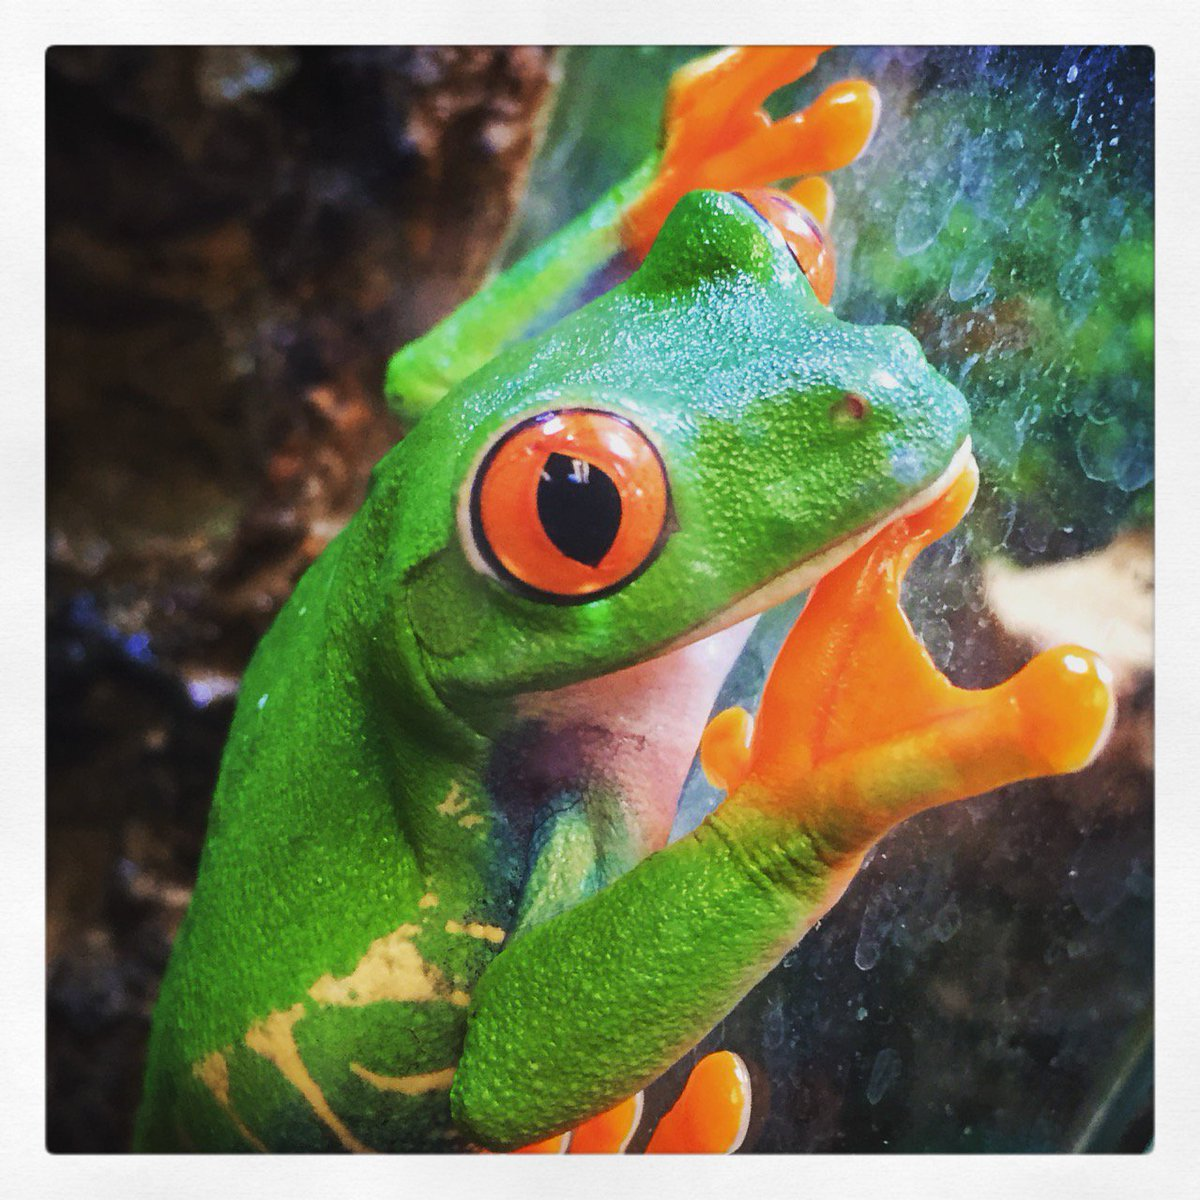 Our Red-eyed Tree #Frog (Agalychnis callidryas) keeps lookout at #ZooMed Labs. #Animal #Amphibian #Pet https://t.co/Hi3YpmWtZO